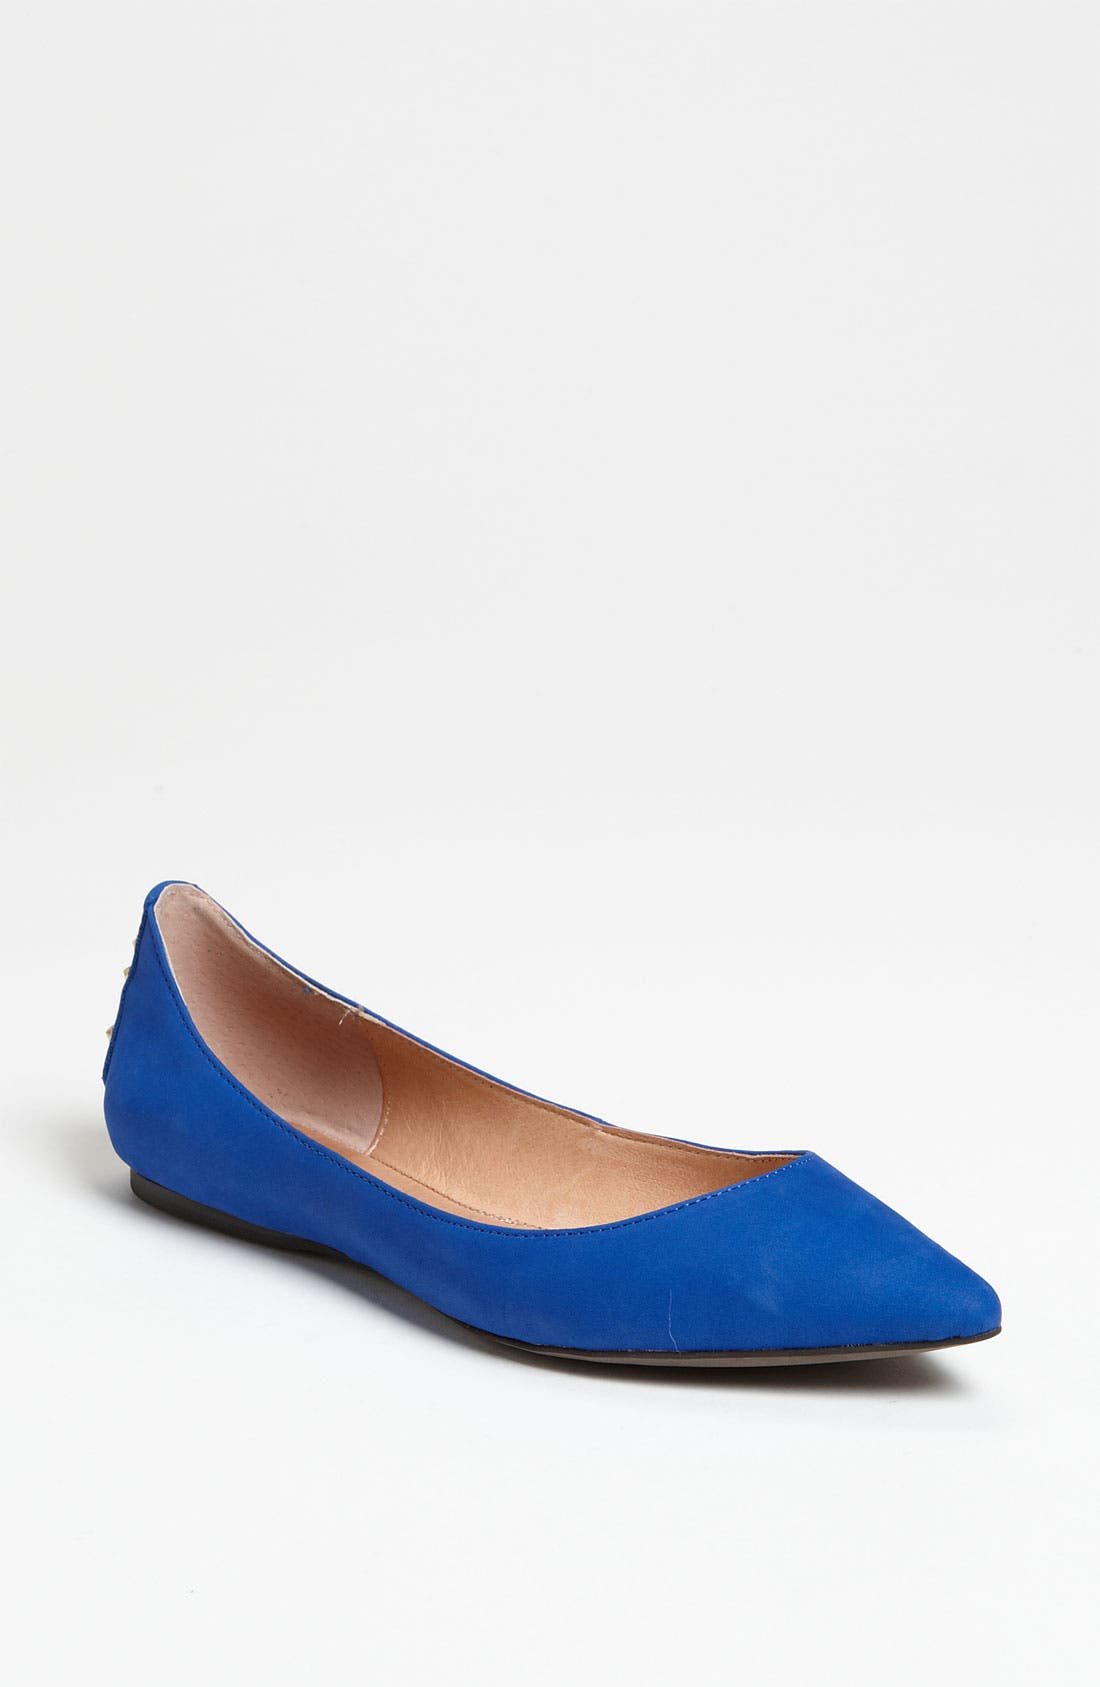 Main Image - Steven by Steve Madden 'Eternal' Flat